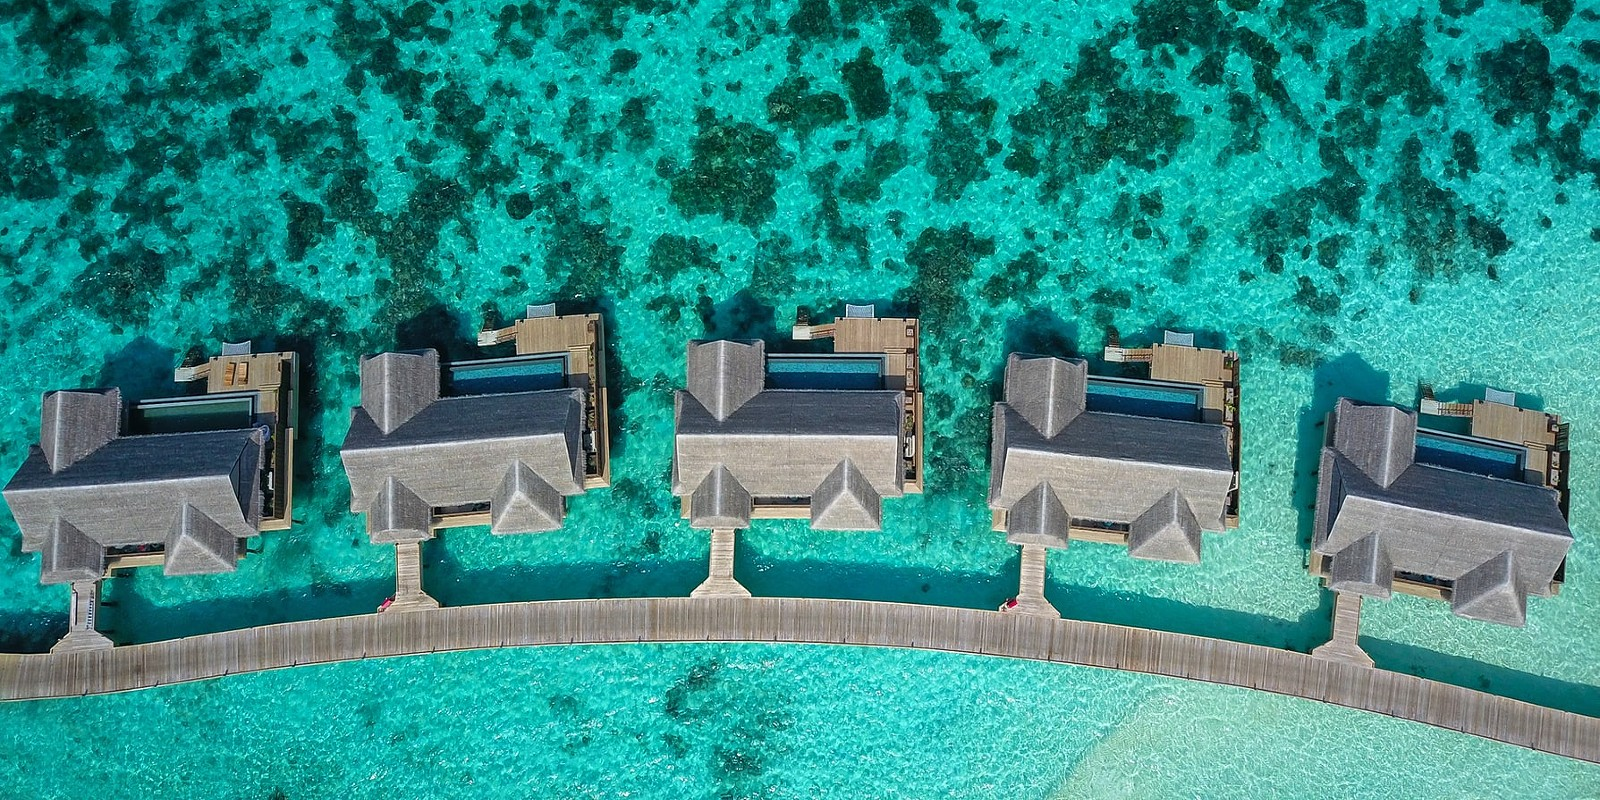 Travel blog: Our Top 6 Resorts for Over Water Villas in the Maldives